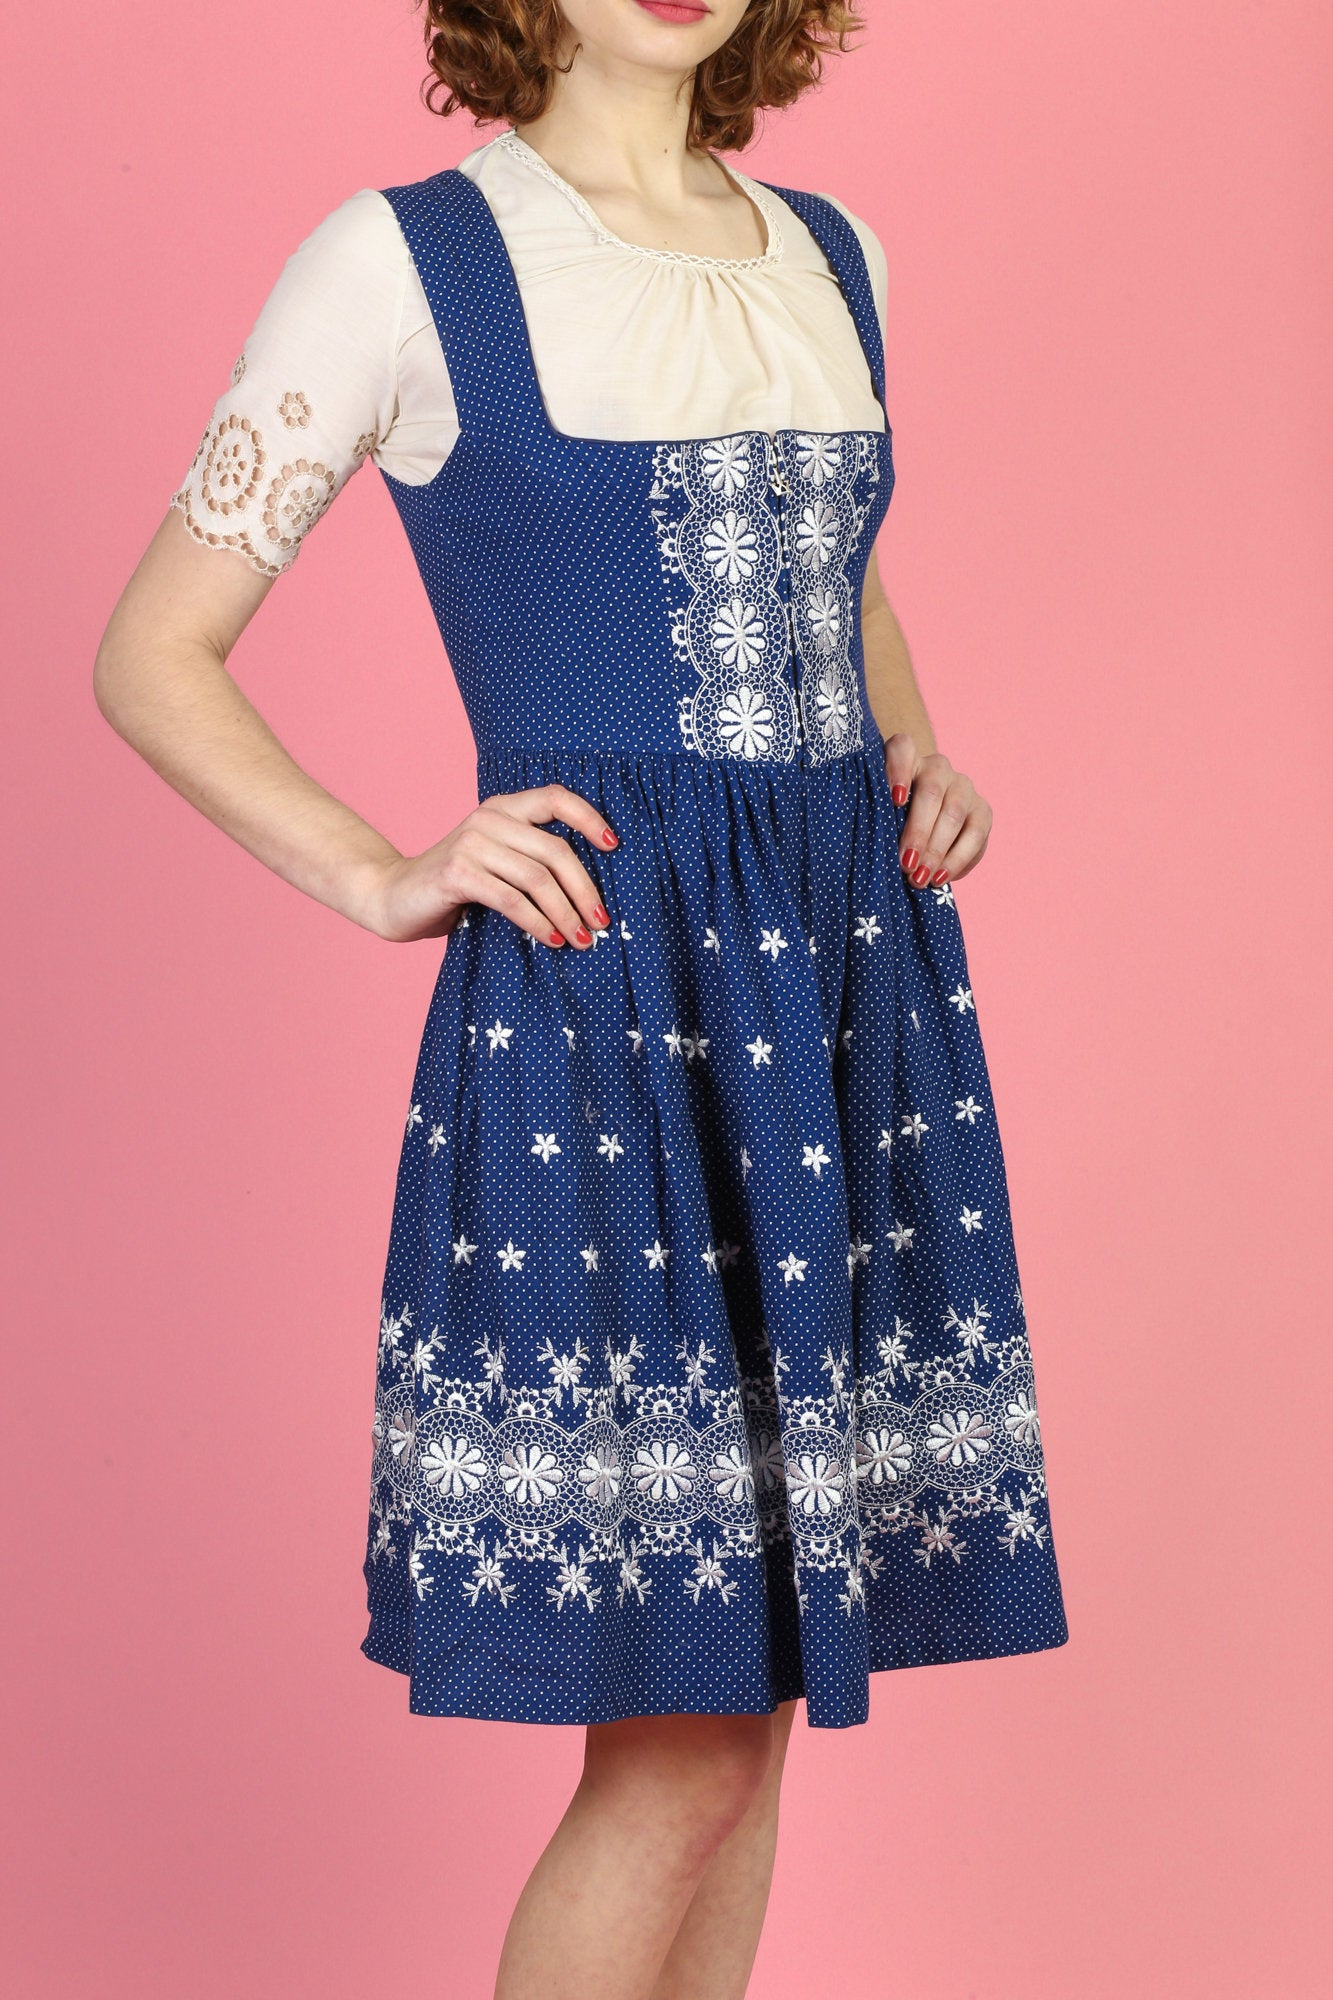 Vintage 70s Dirndl Folk Dress - Small to Medium